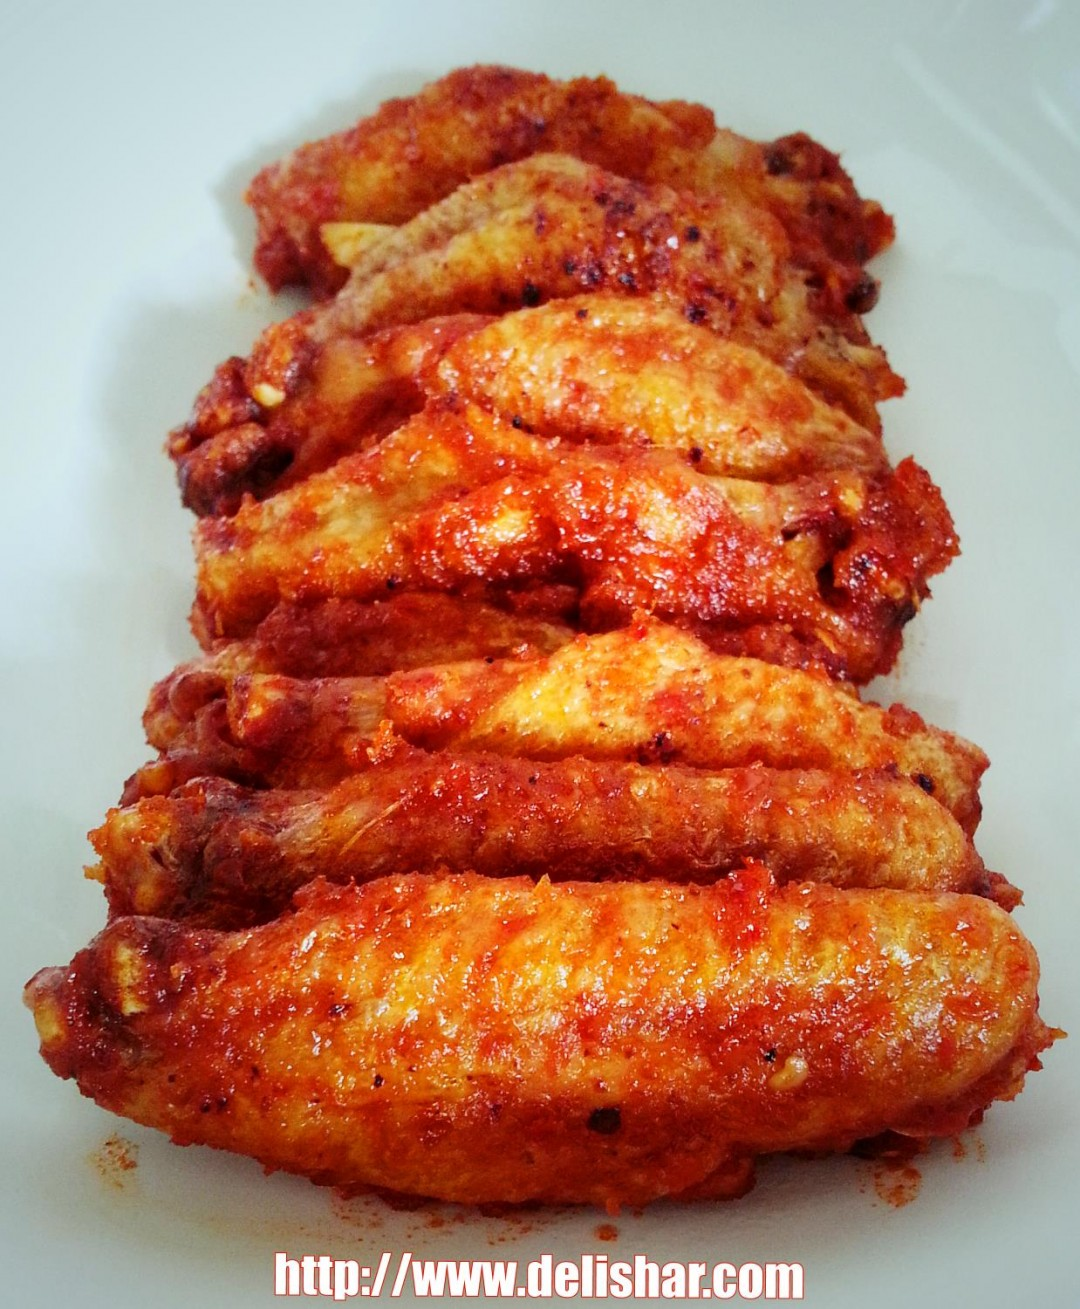 Baked Sambal Chicken Wing Delishar Singapore Cooking Blog